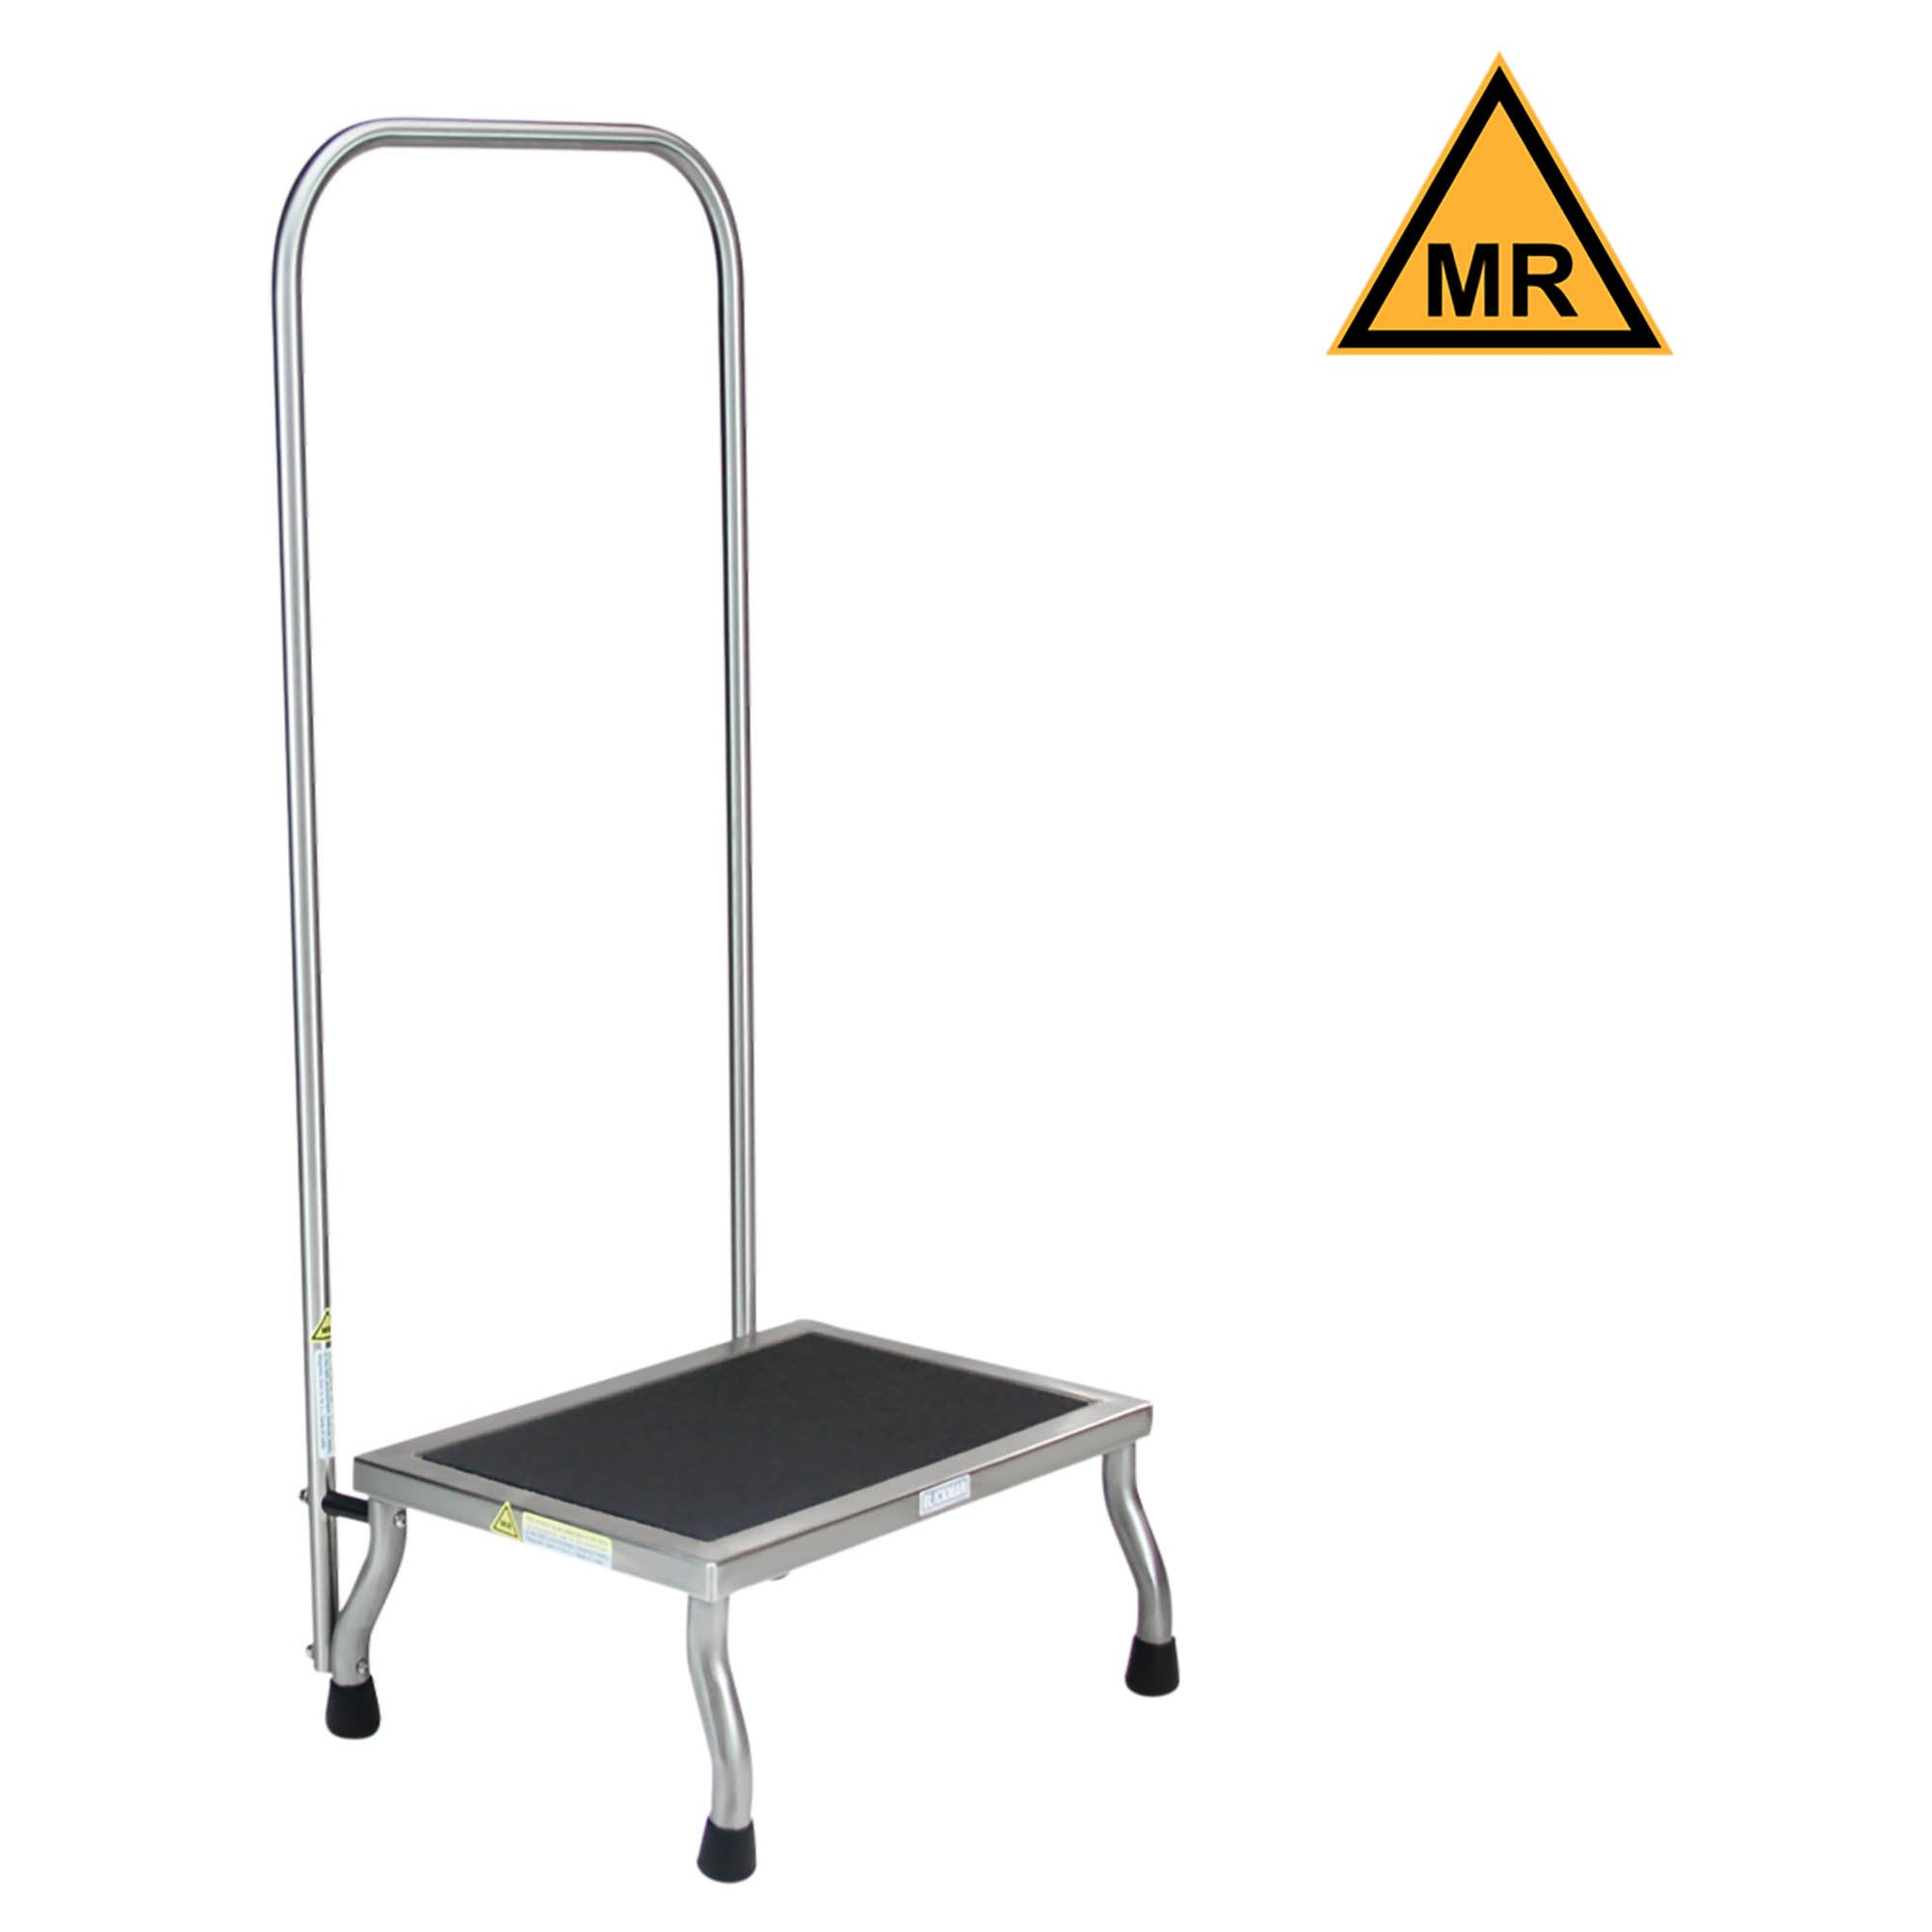 Non-Magnetic Foot Stool with Handrail - 12